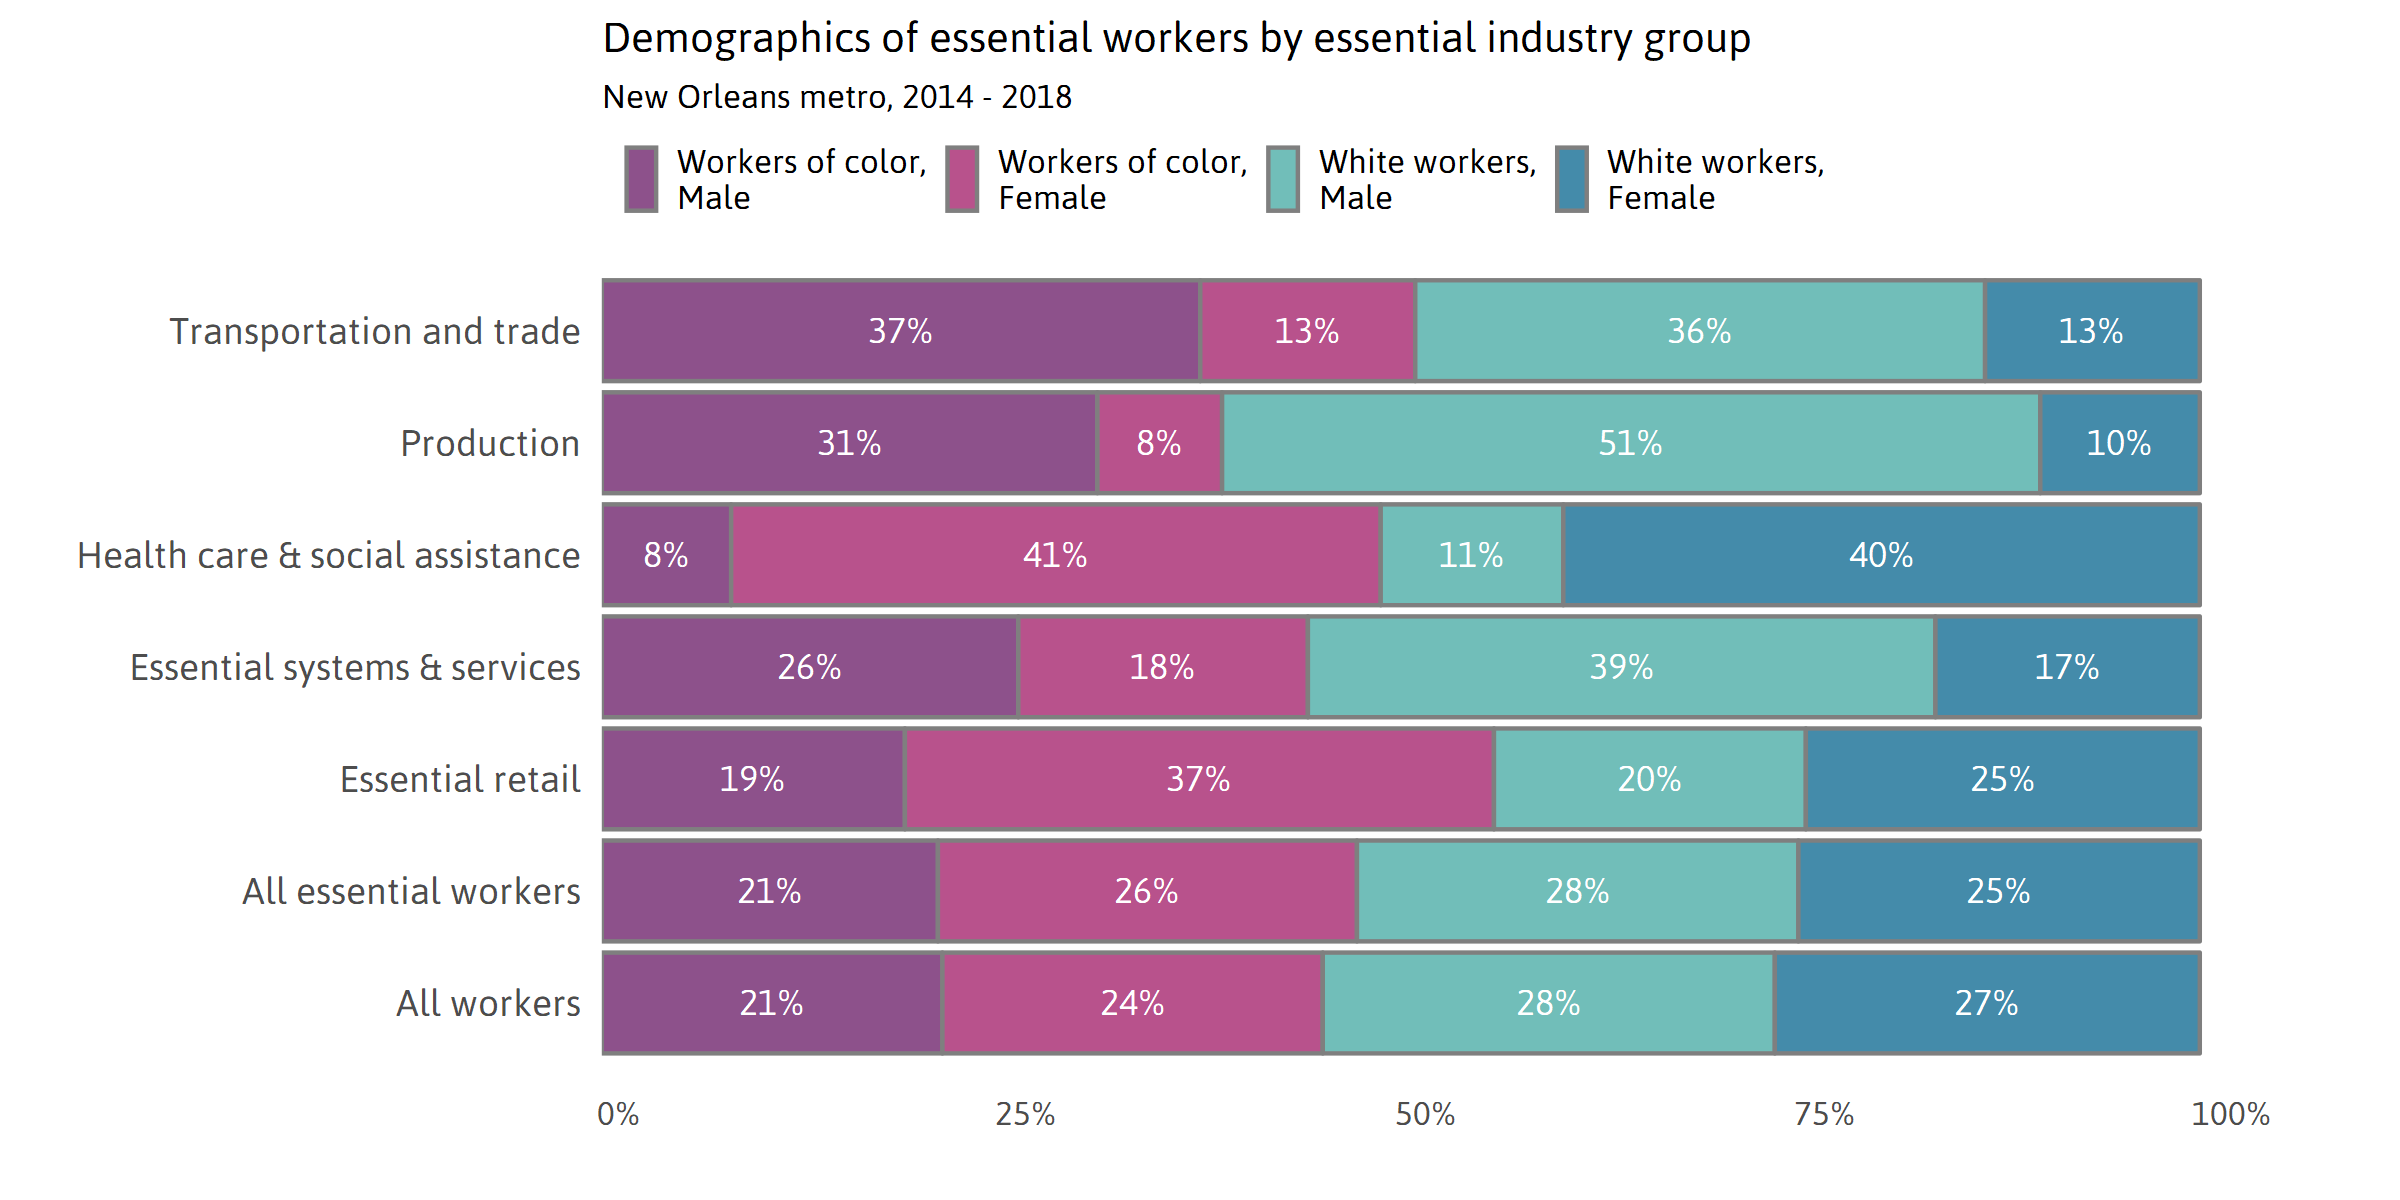 Demographics of Essential Workers